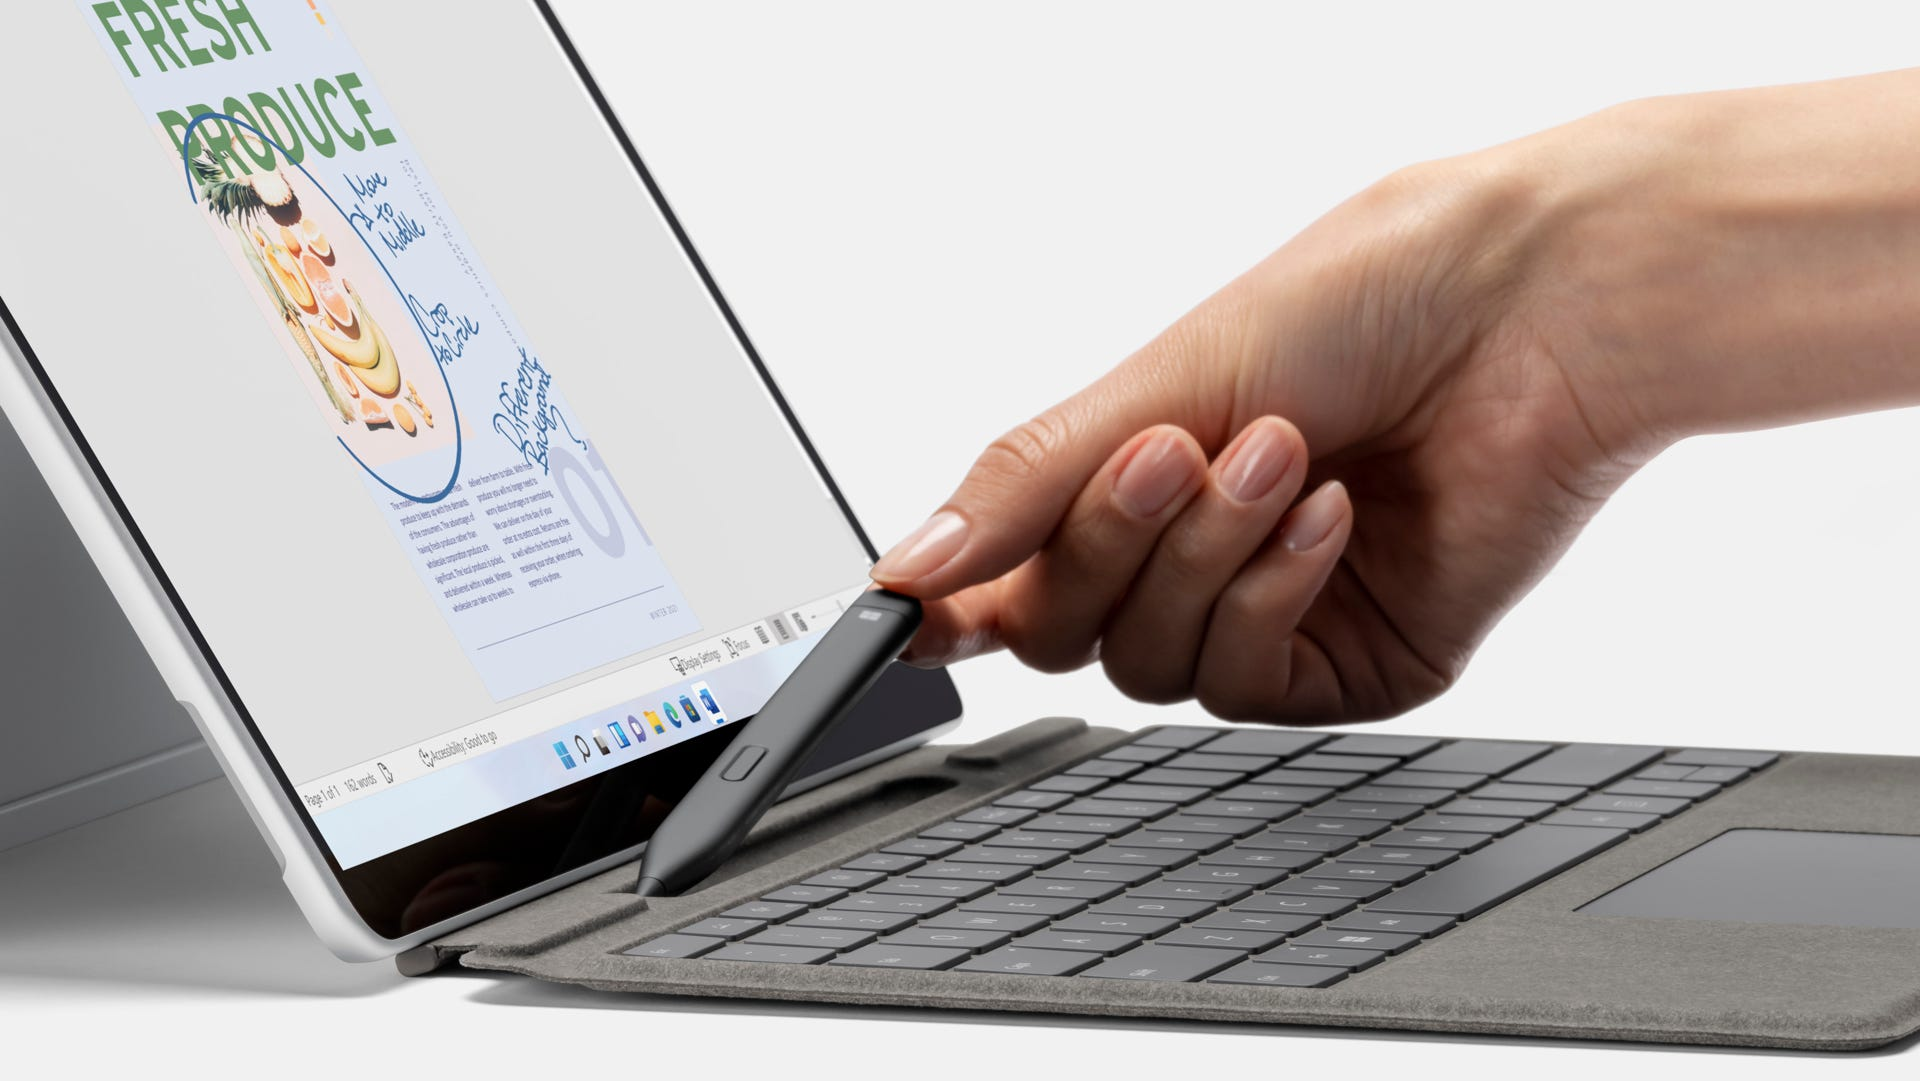 Surface Pro 8 with Slim Pen 2